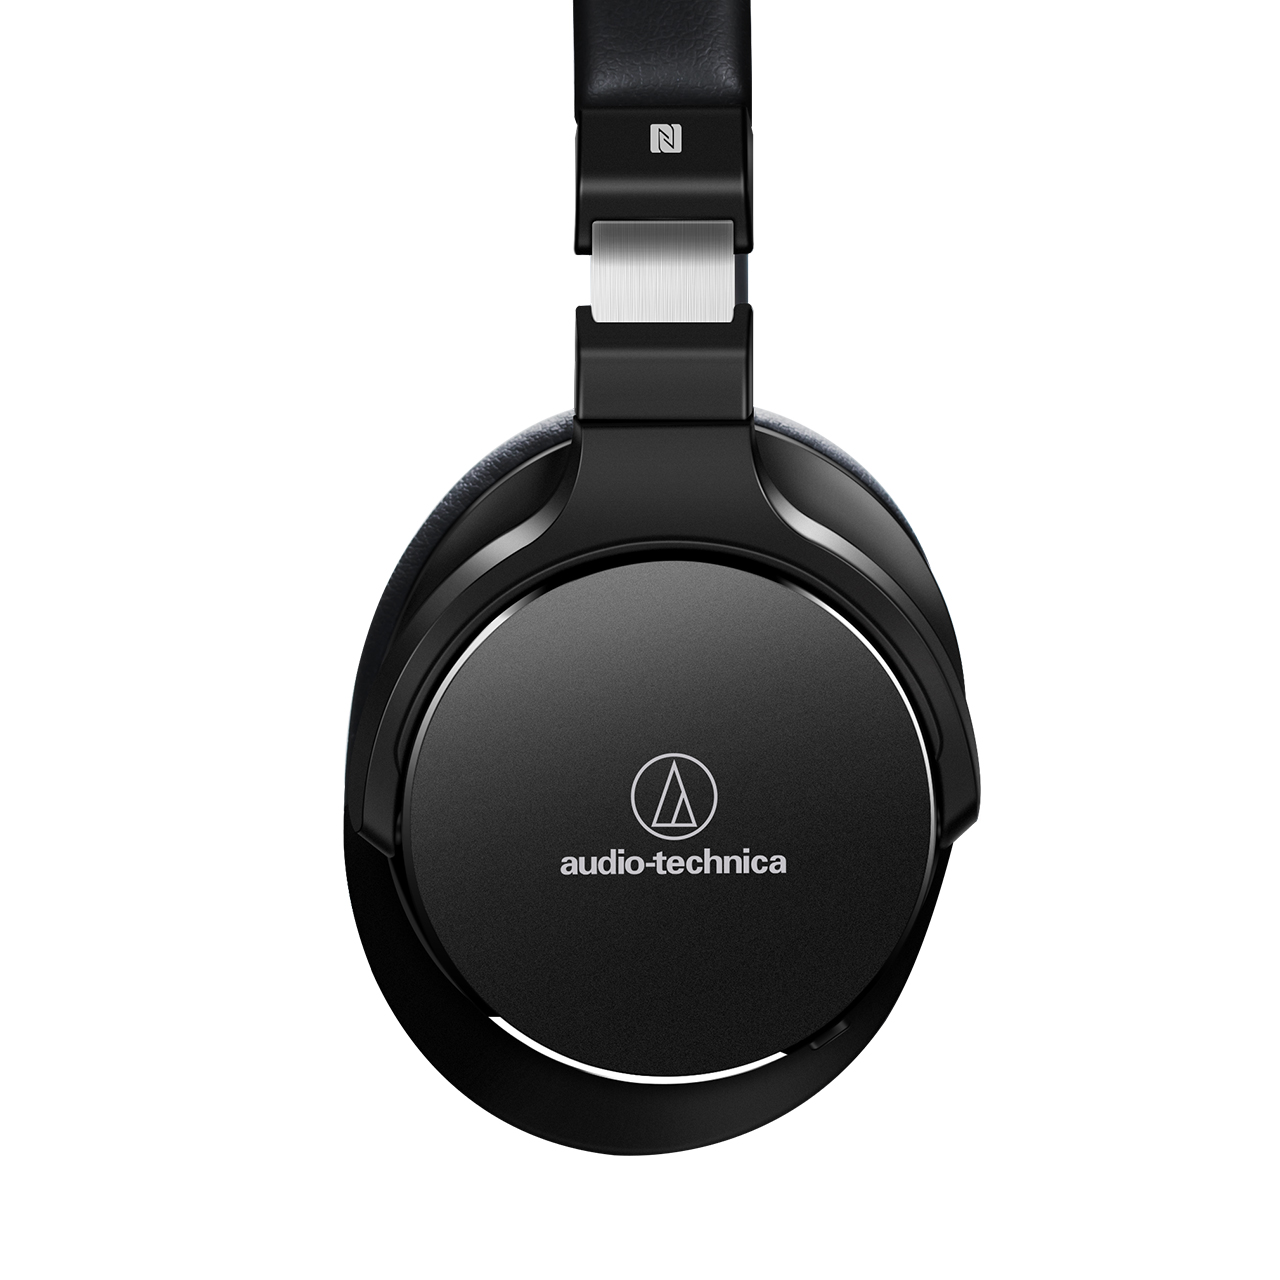 Usd 49071 Audio Technica Ath Sr5bt Portable Hifi Head Mounted Clr100is With Mic Black Lightbox Moreview